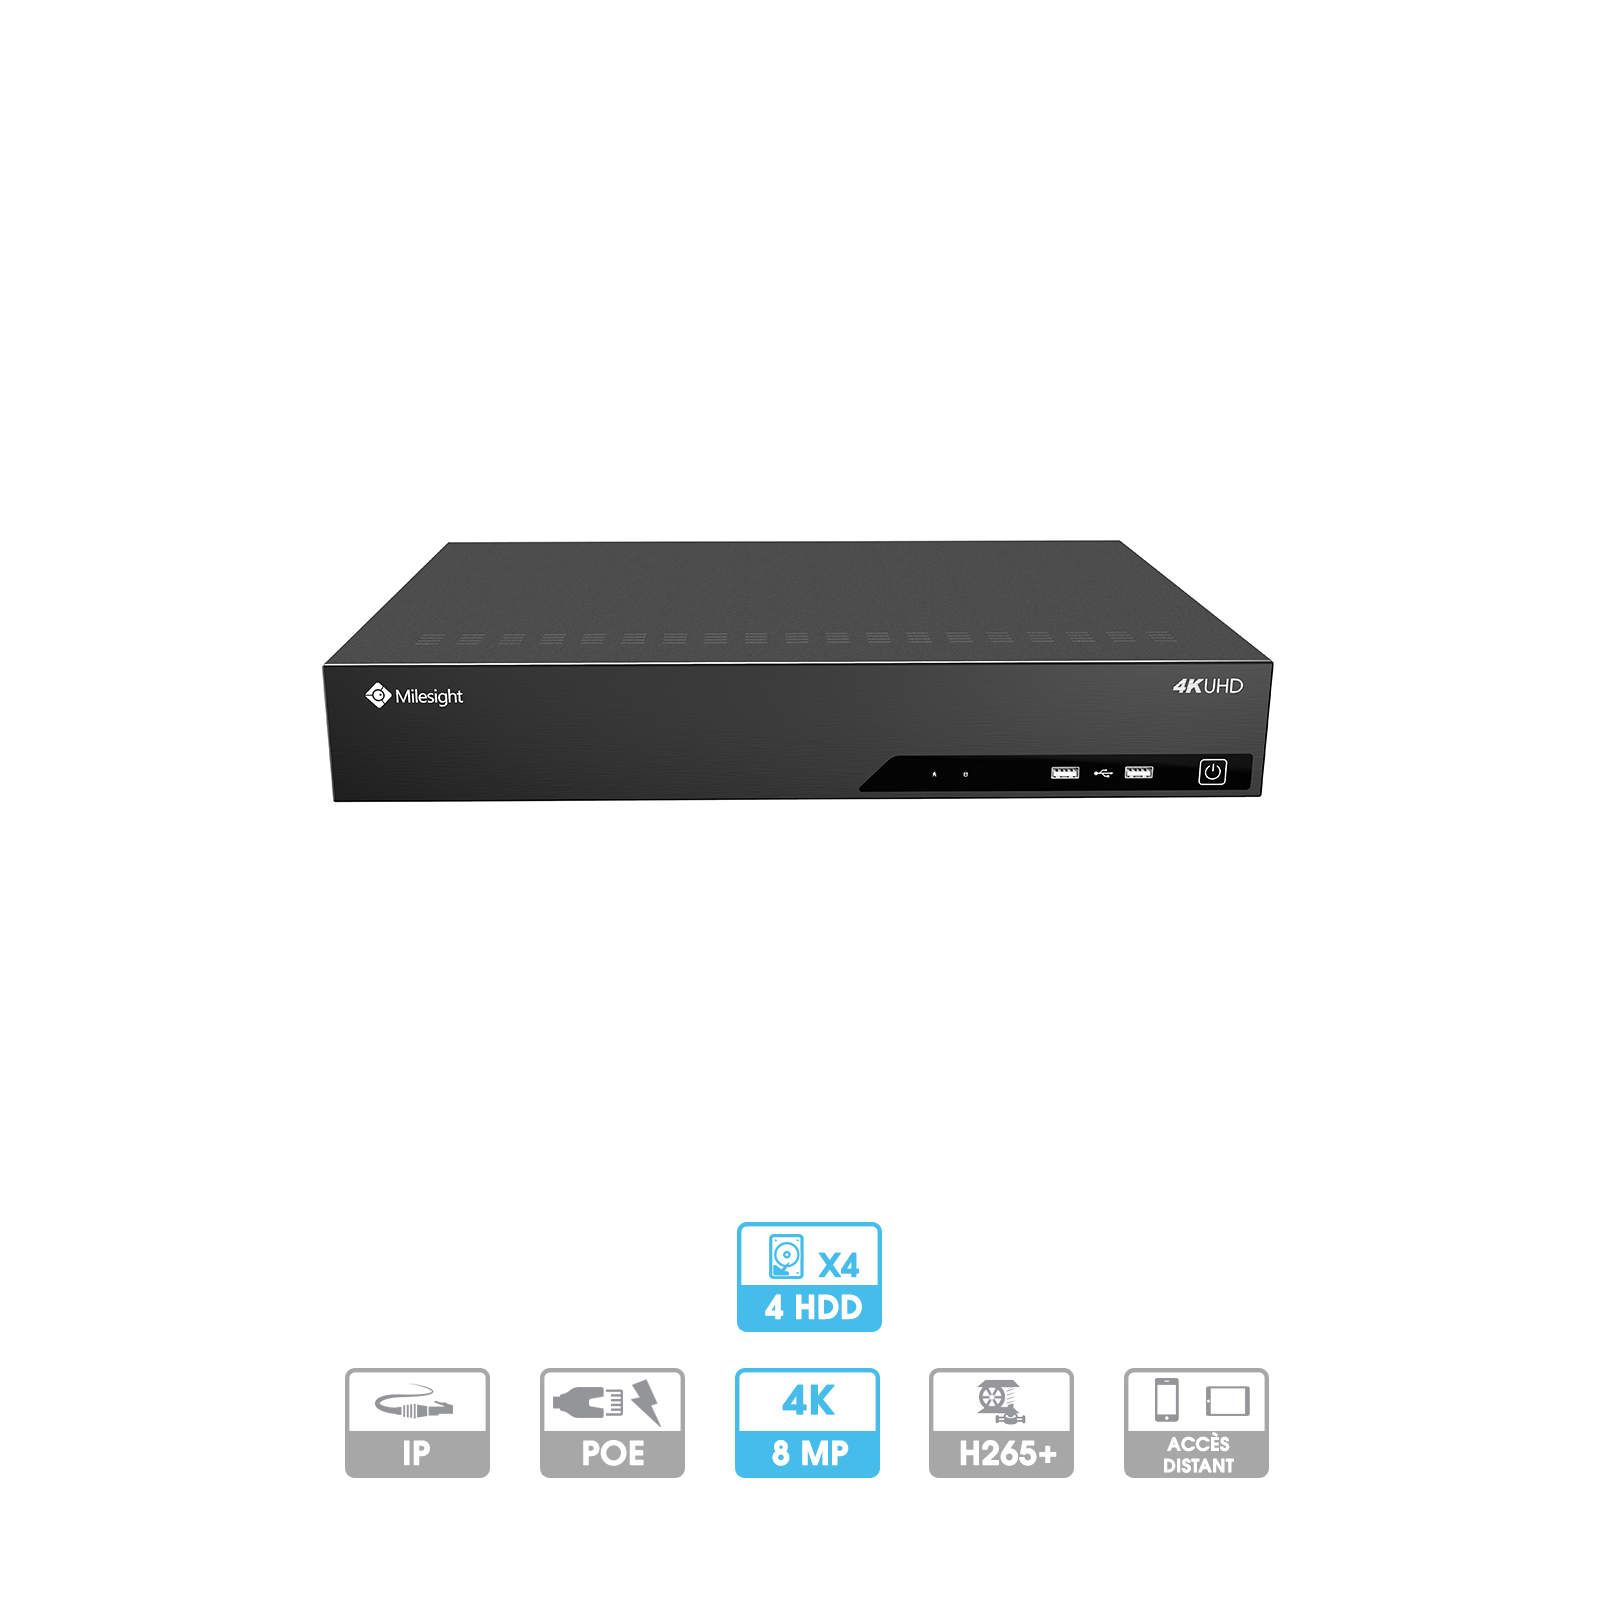 Enregistreur NVR Milesight | 32 caméras (24 PoE) | IP | PoE | 8 MP maximum | 4 HDD